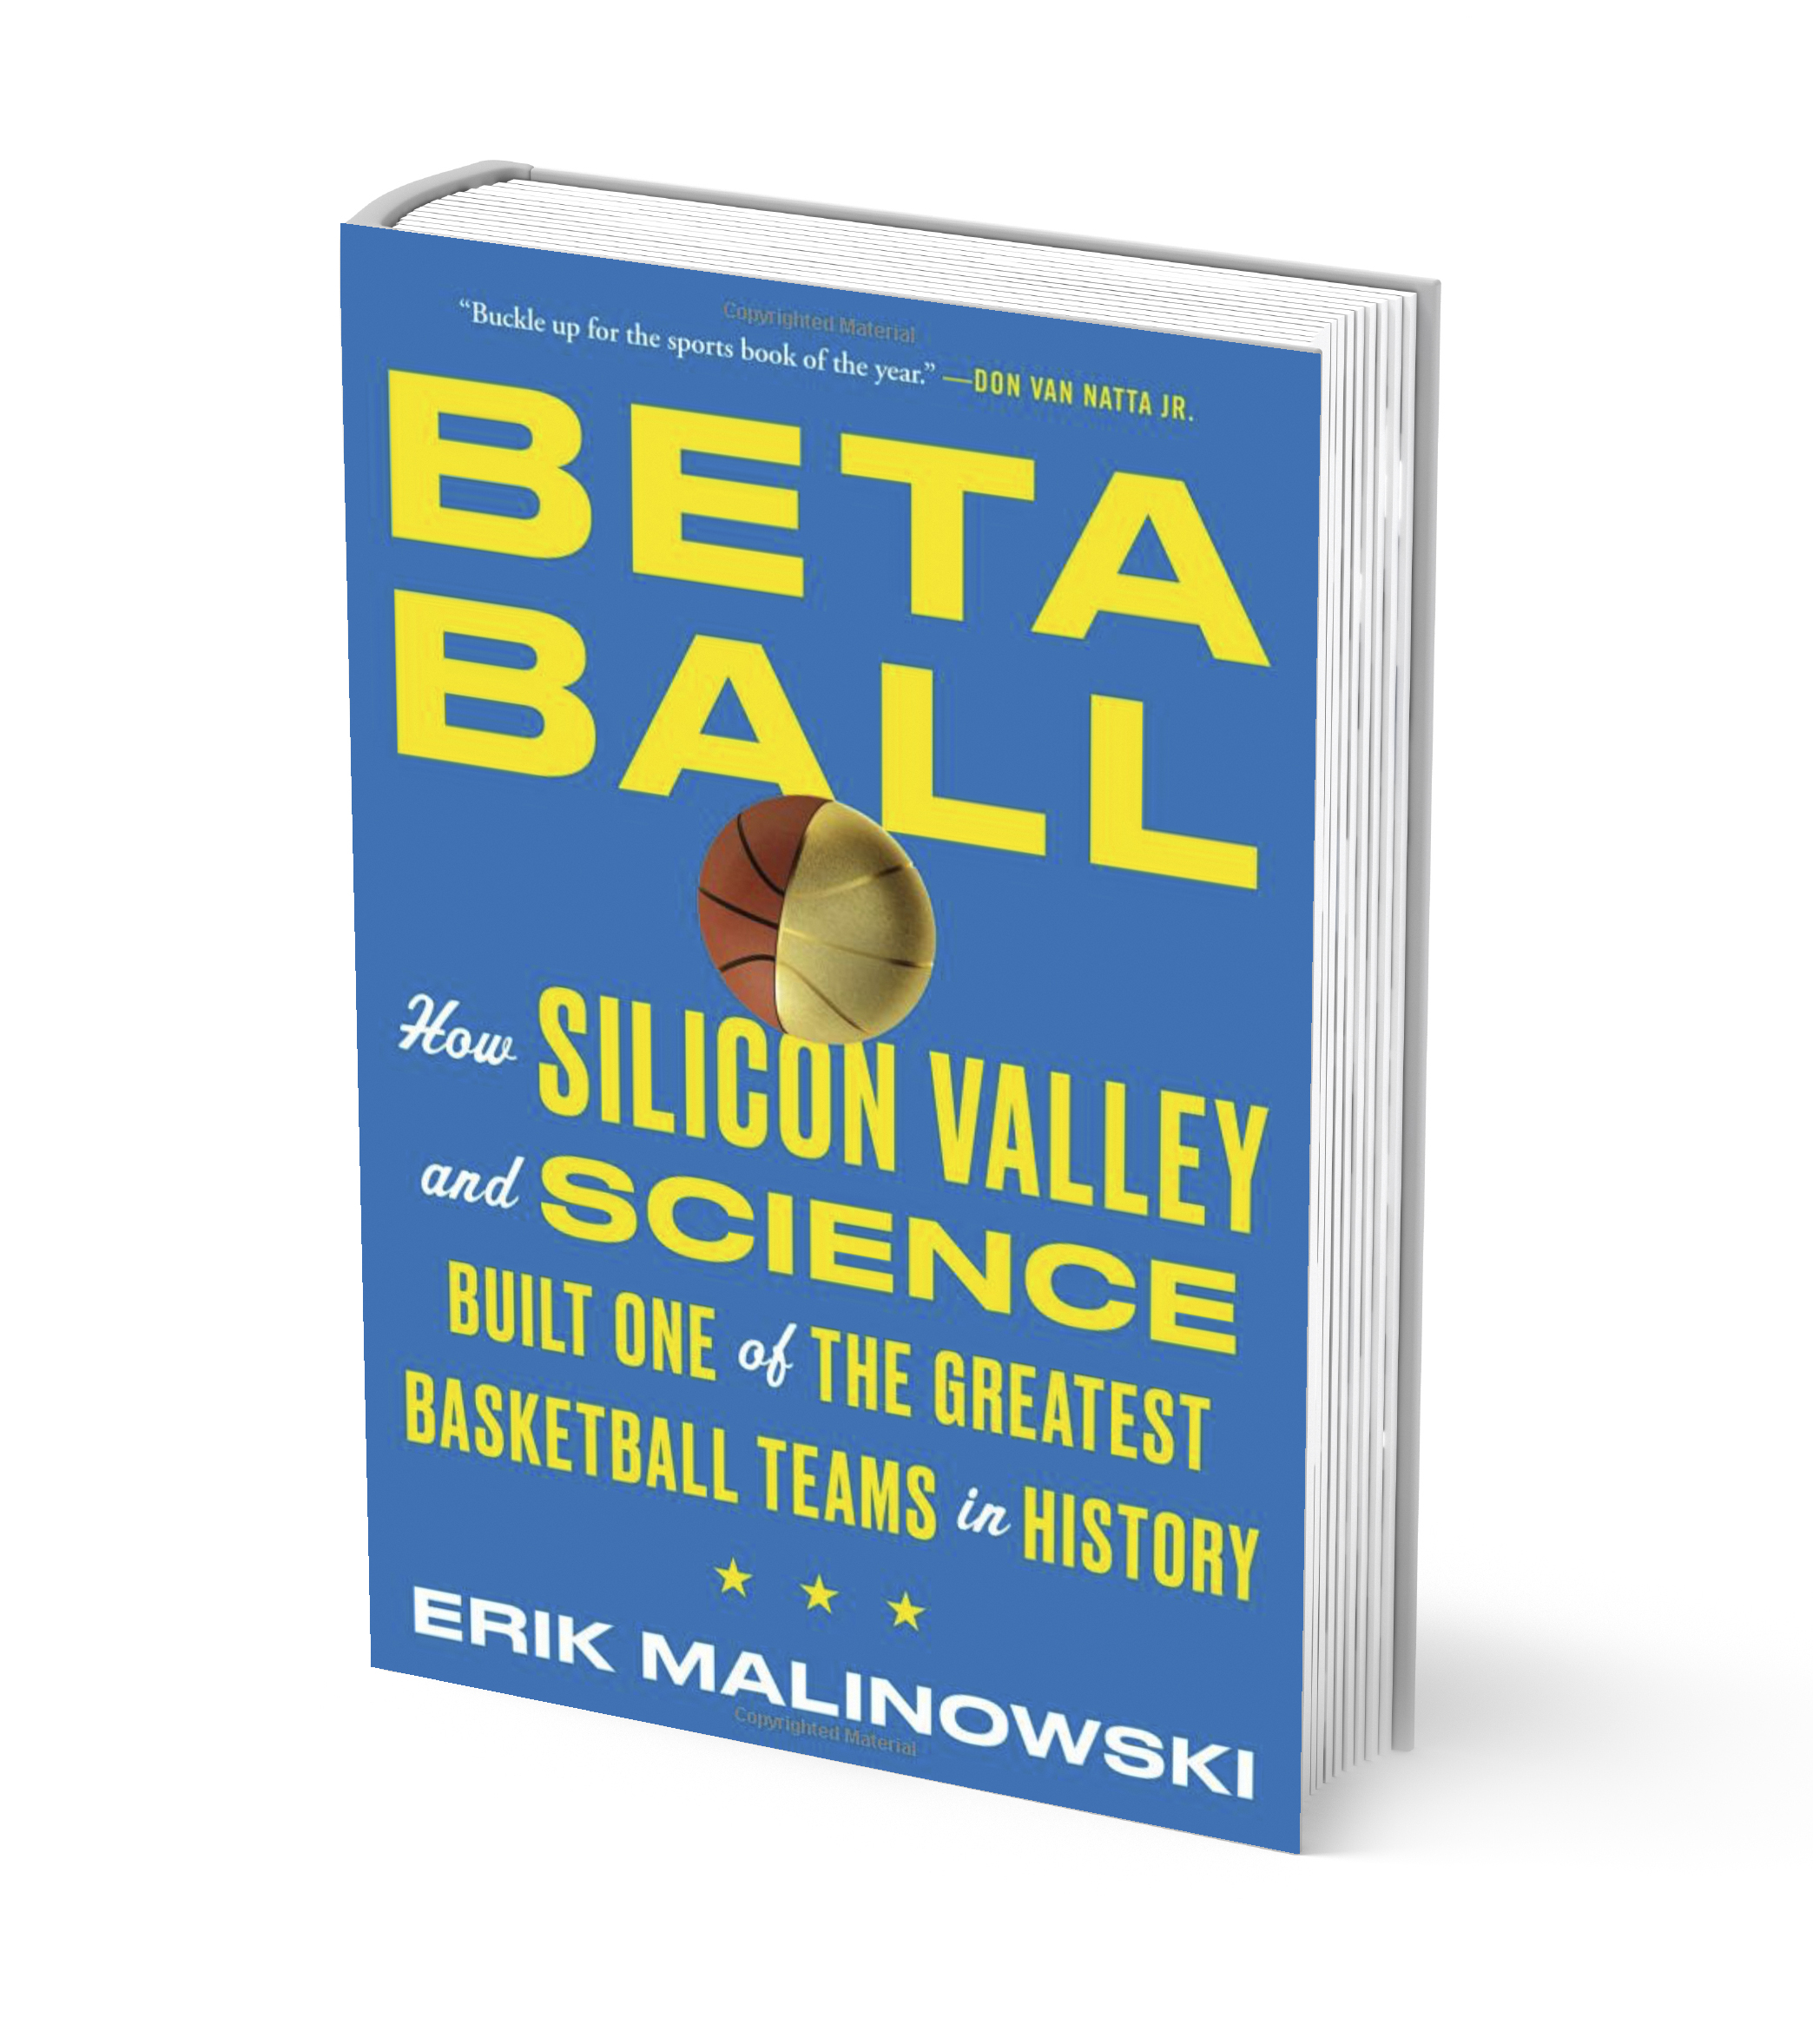 Betaball: How Silicon Valley and Science Built One of the Greatest Basketball Teams in History Erik Malinowski (COM'02)